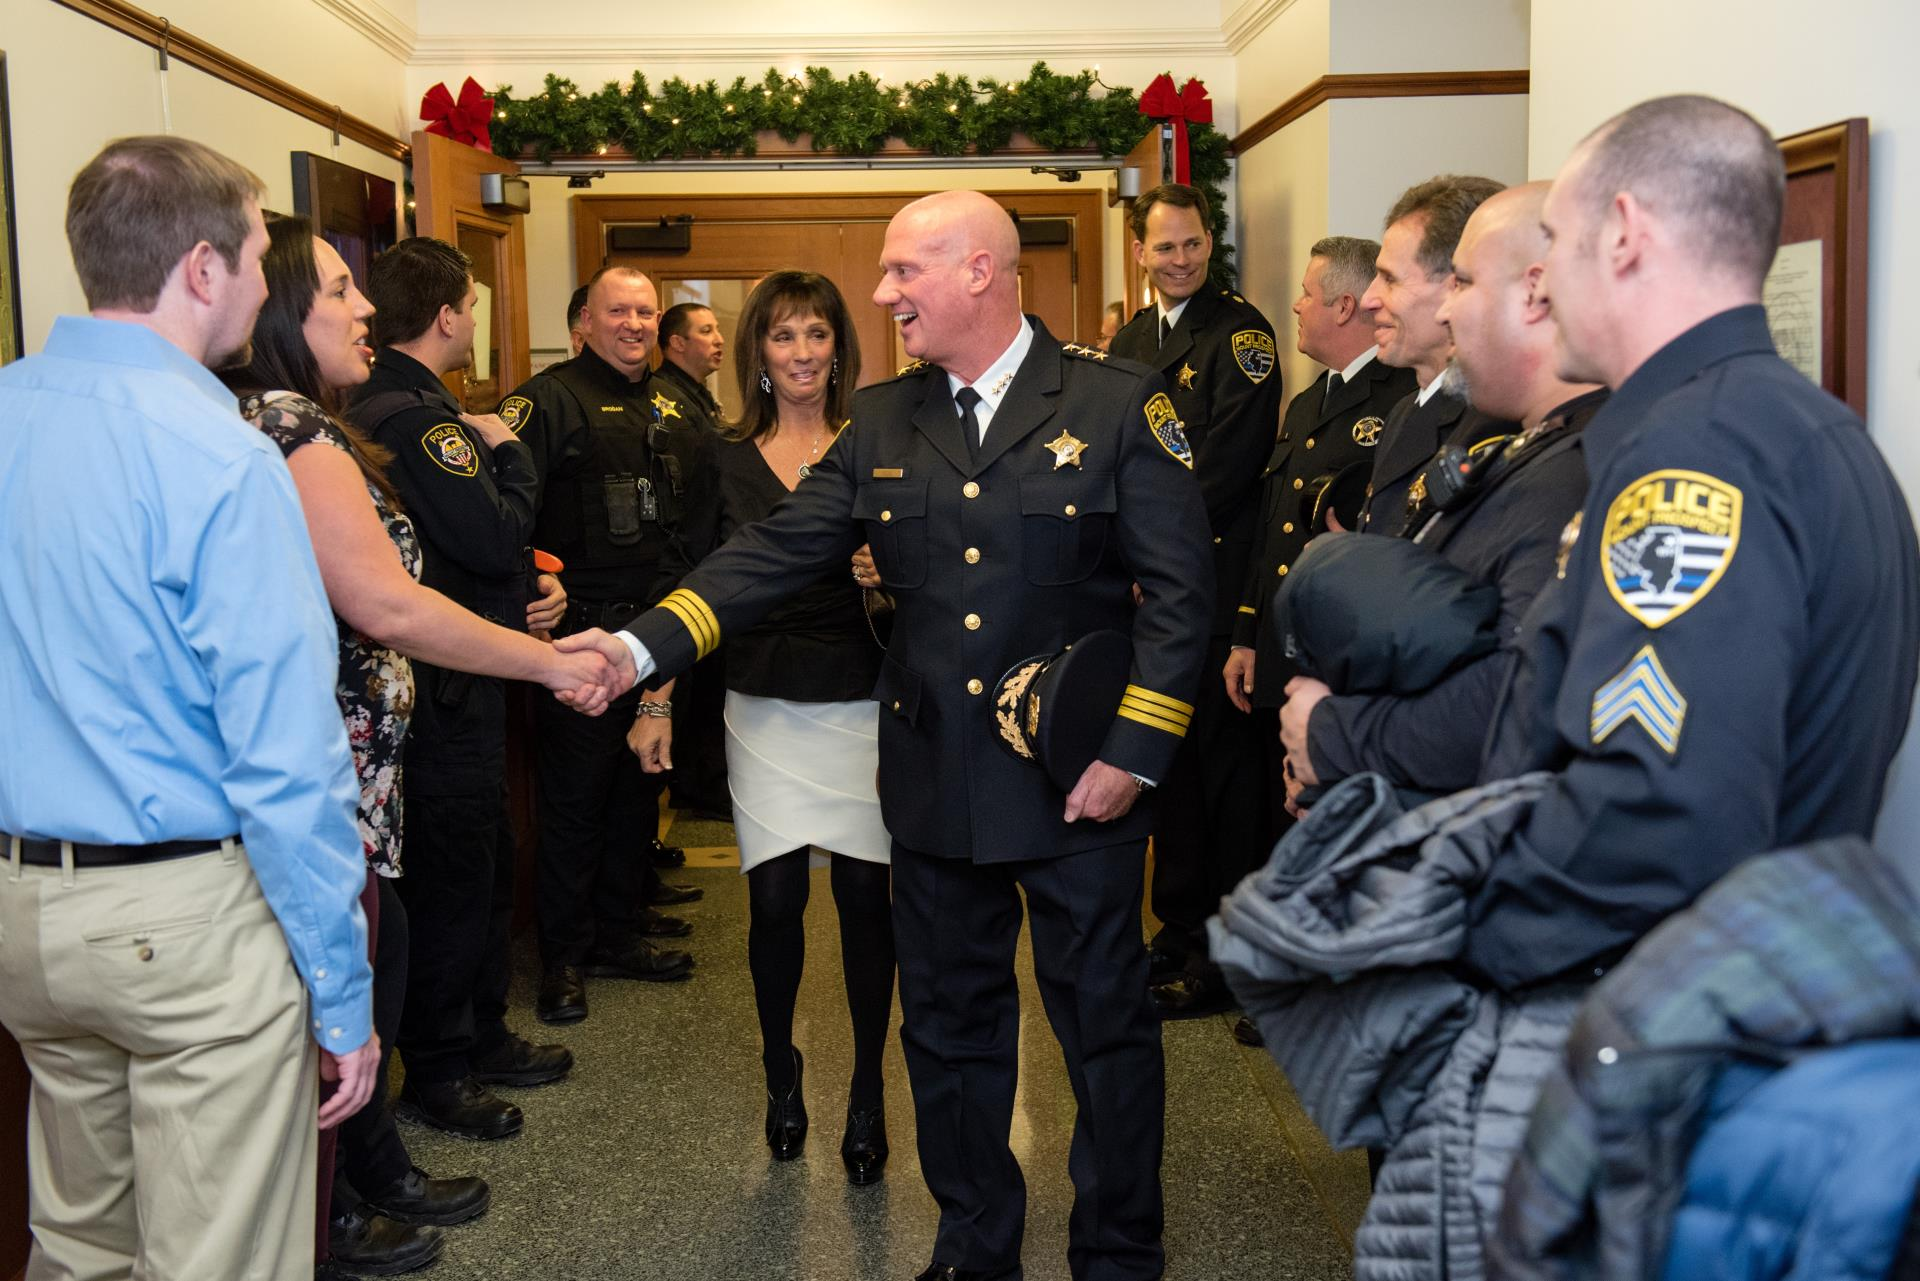 Chief Koziol Swearing-In Ceremony Final-4264